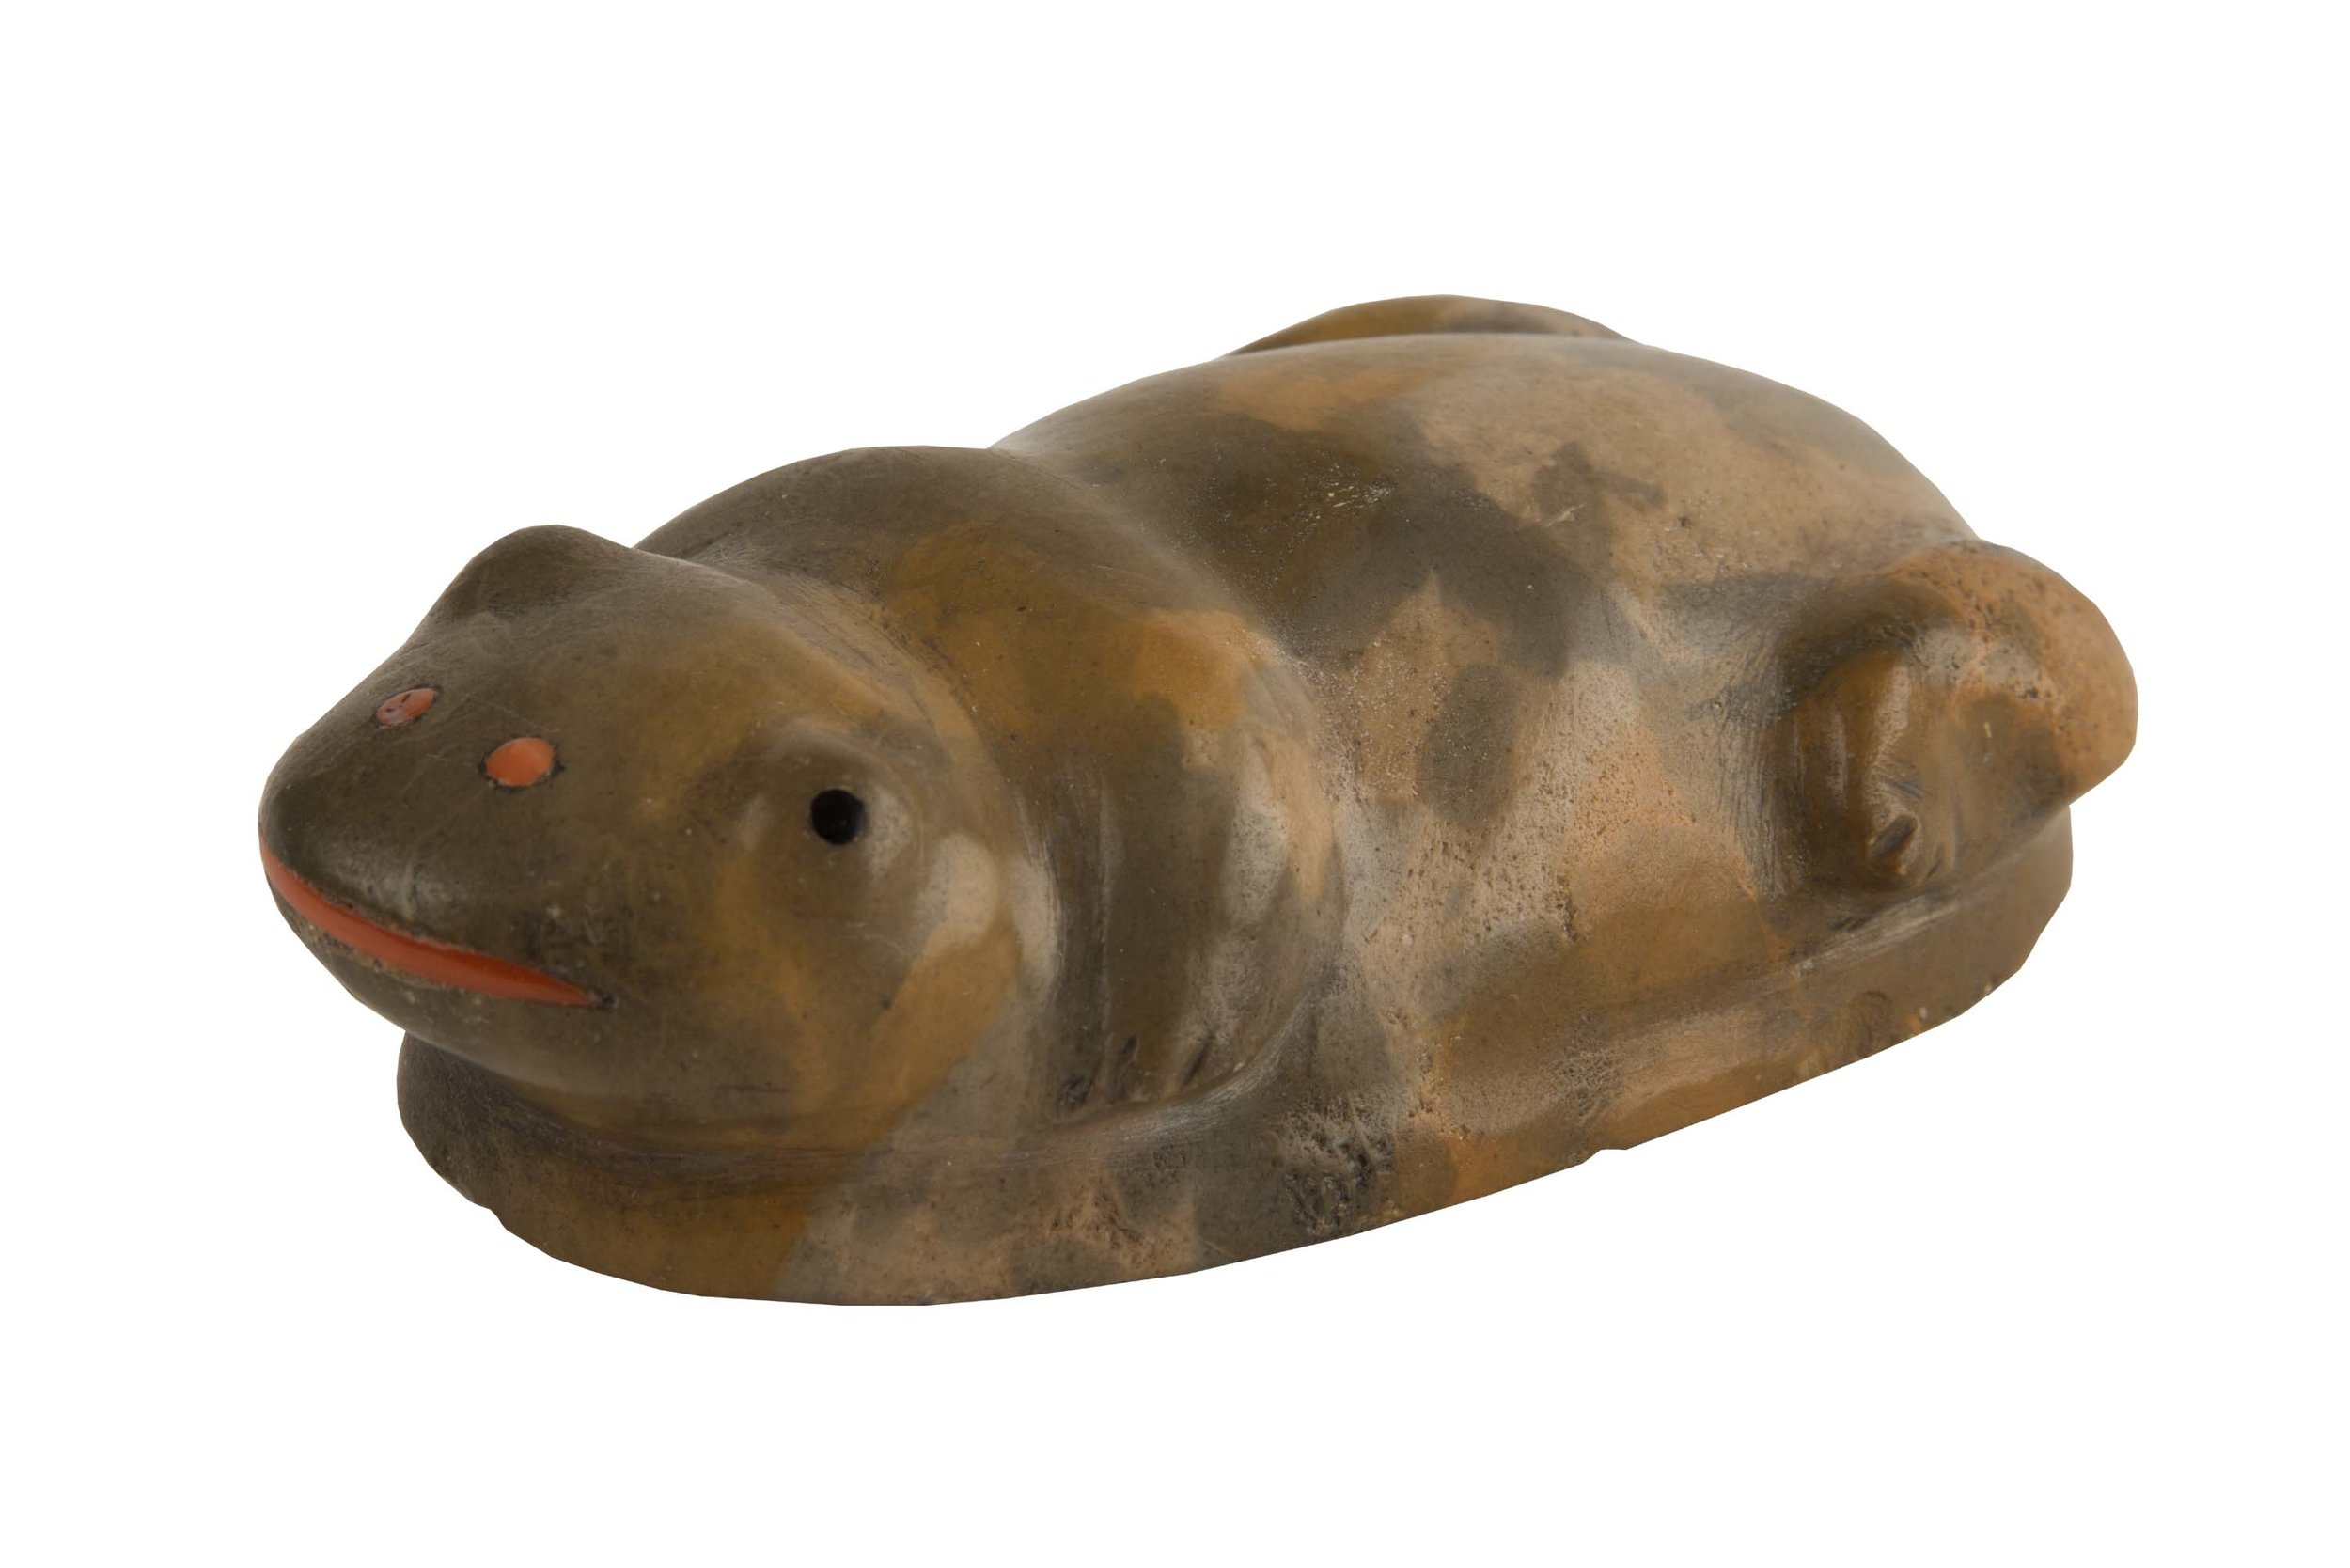 Leekya, Zuni (1889-1966) Frog carving given to Kenneth Wallace, 1930s-1950s Zuni stone, coral, jet Photographer: David Nufer Courtesy Albuquerque Museum Gift of Kenneth Alan Wallace and his children, Andrew, Aaron, Susanna, Megan and Glen 2010.34.4